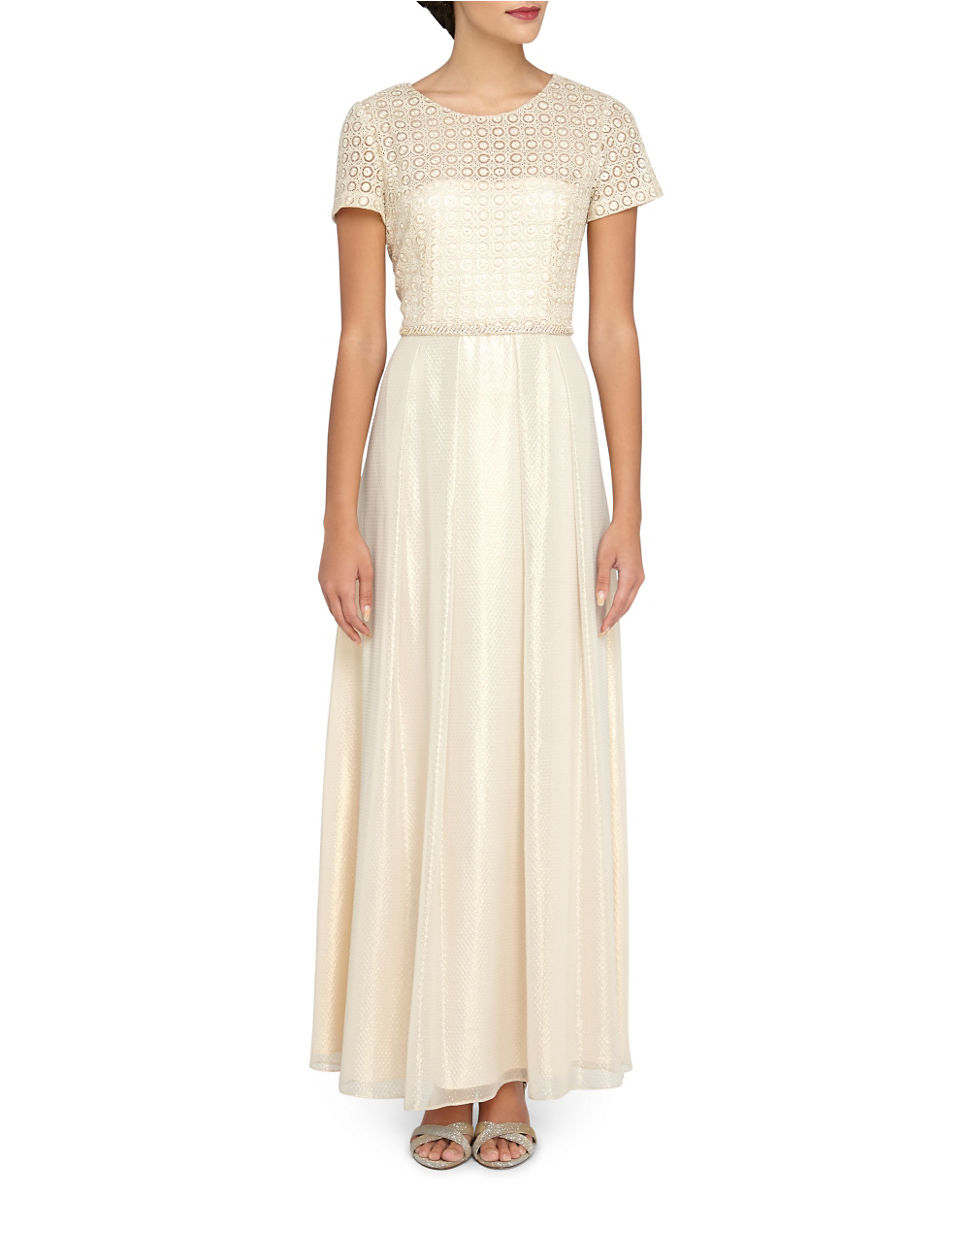 Lyst - Tahari Embroidered Popover Gown in Metallic